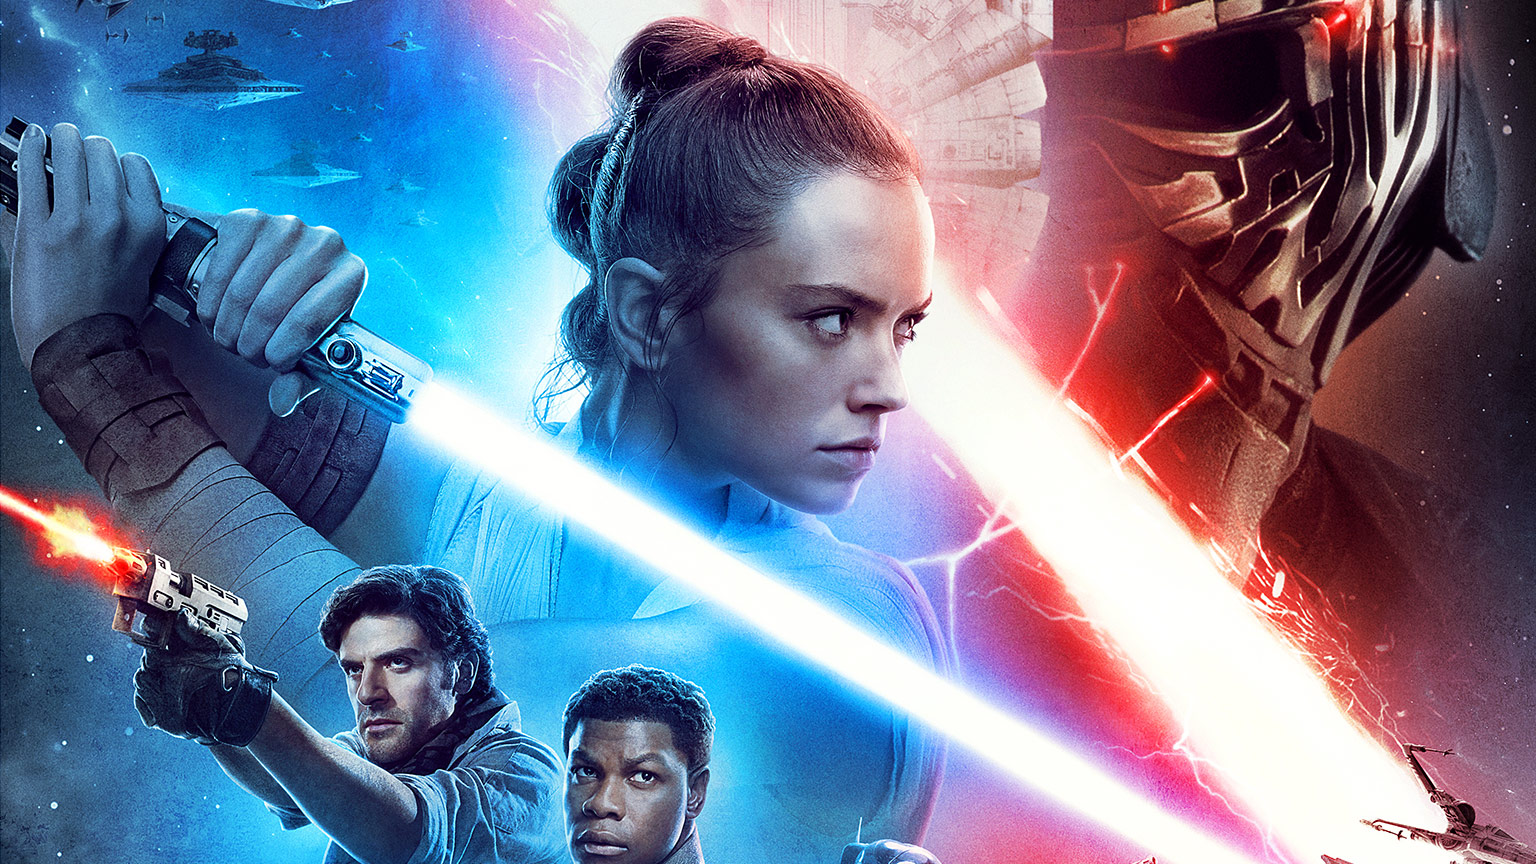 A new Star Wars movie is still coming in 2022, despite Disney's big list of delays